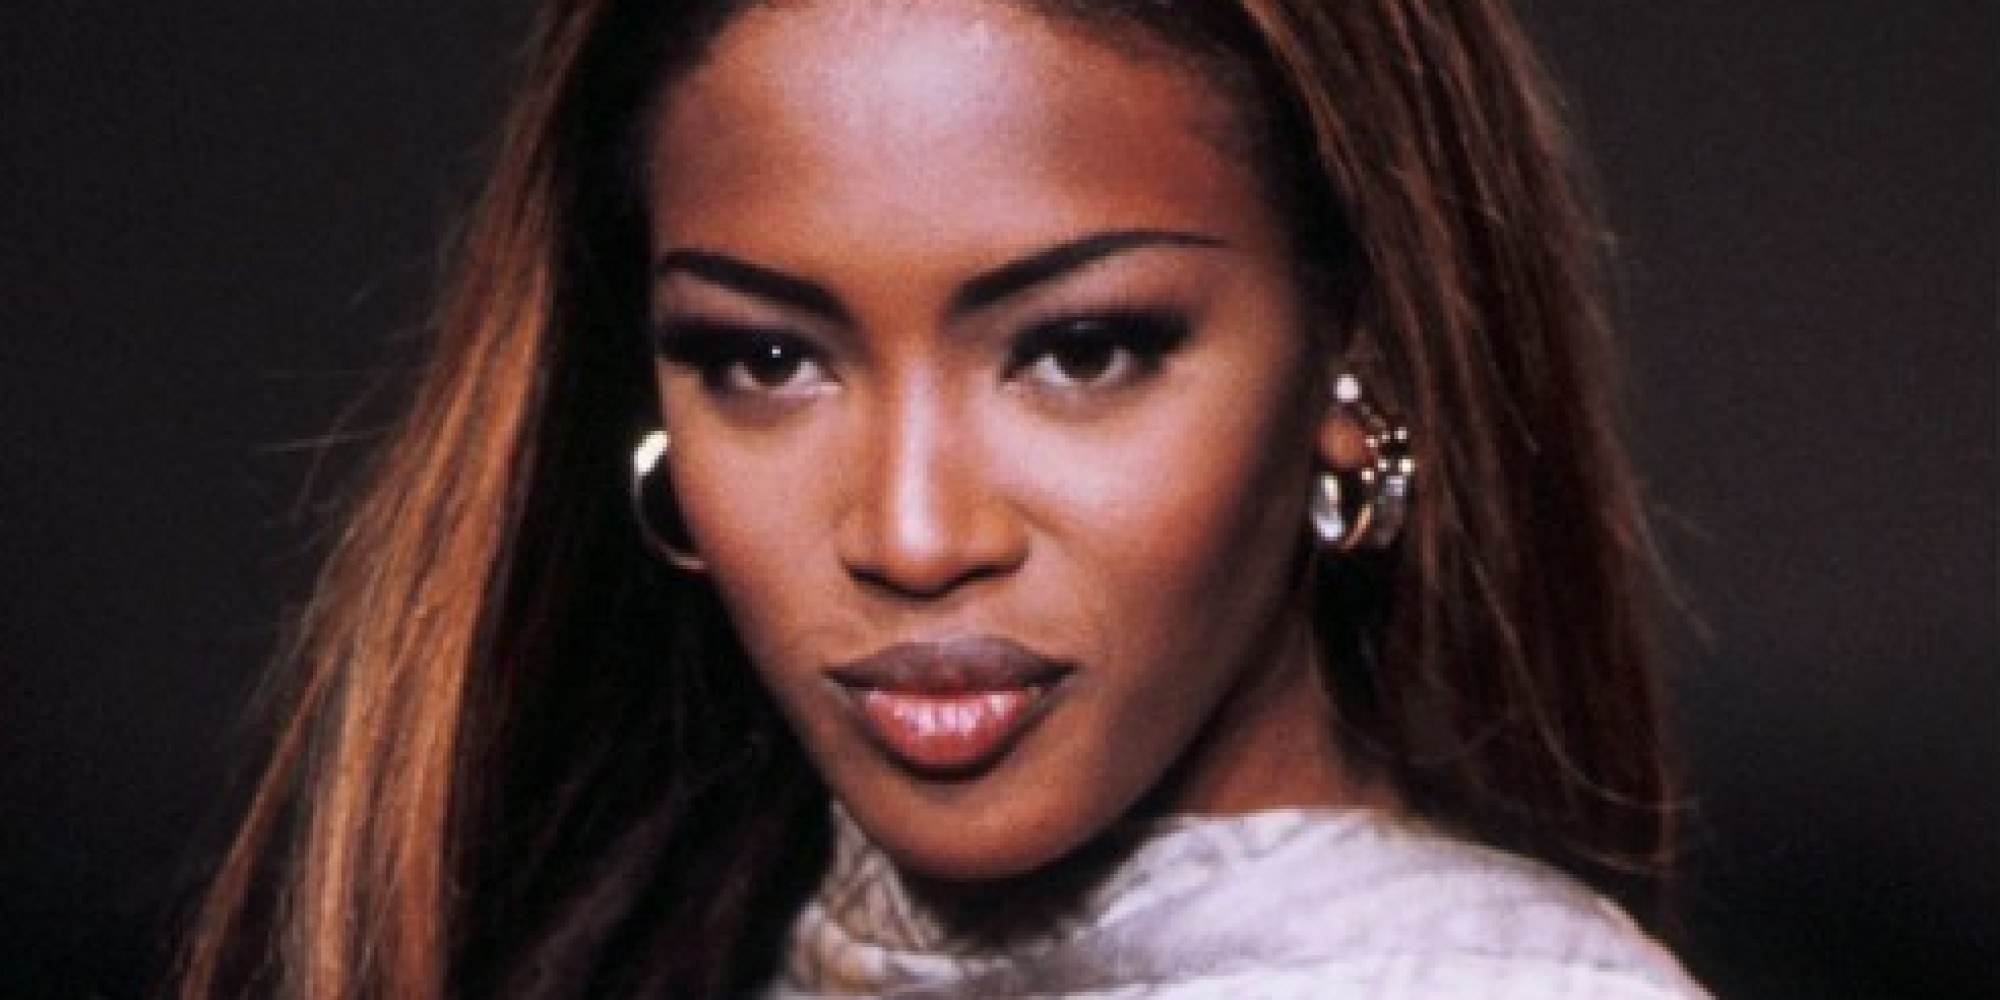 naomi campbell cat deluxe at nightnaomi campbell cat deluxe, naomi campbell духи, naomi campbell young, naomi campbell cat deluxe at night, naomi campbell naomi, naomi campbell at night, naomi campbell cat deluxe купить, naomi campbell духи купить, naomi campbell pret a porter, naomi campbell exult, naomi campbell height, naomi campbell wikipedia, naomi campbell skins, naomi campbell cat deluxe отзывы, naomi campbell cat deluxe цена, naomi campbell instagram, naomi campbell дети, naomi campbell catwalk, naomi campbell фото, naomi campbell mystery